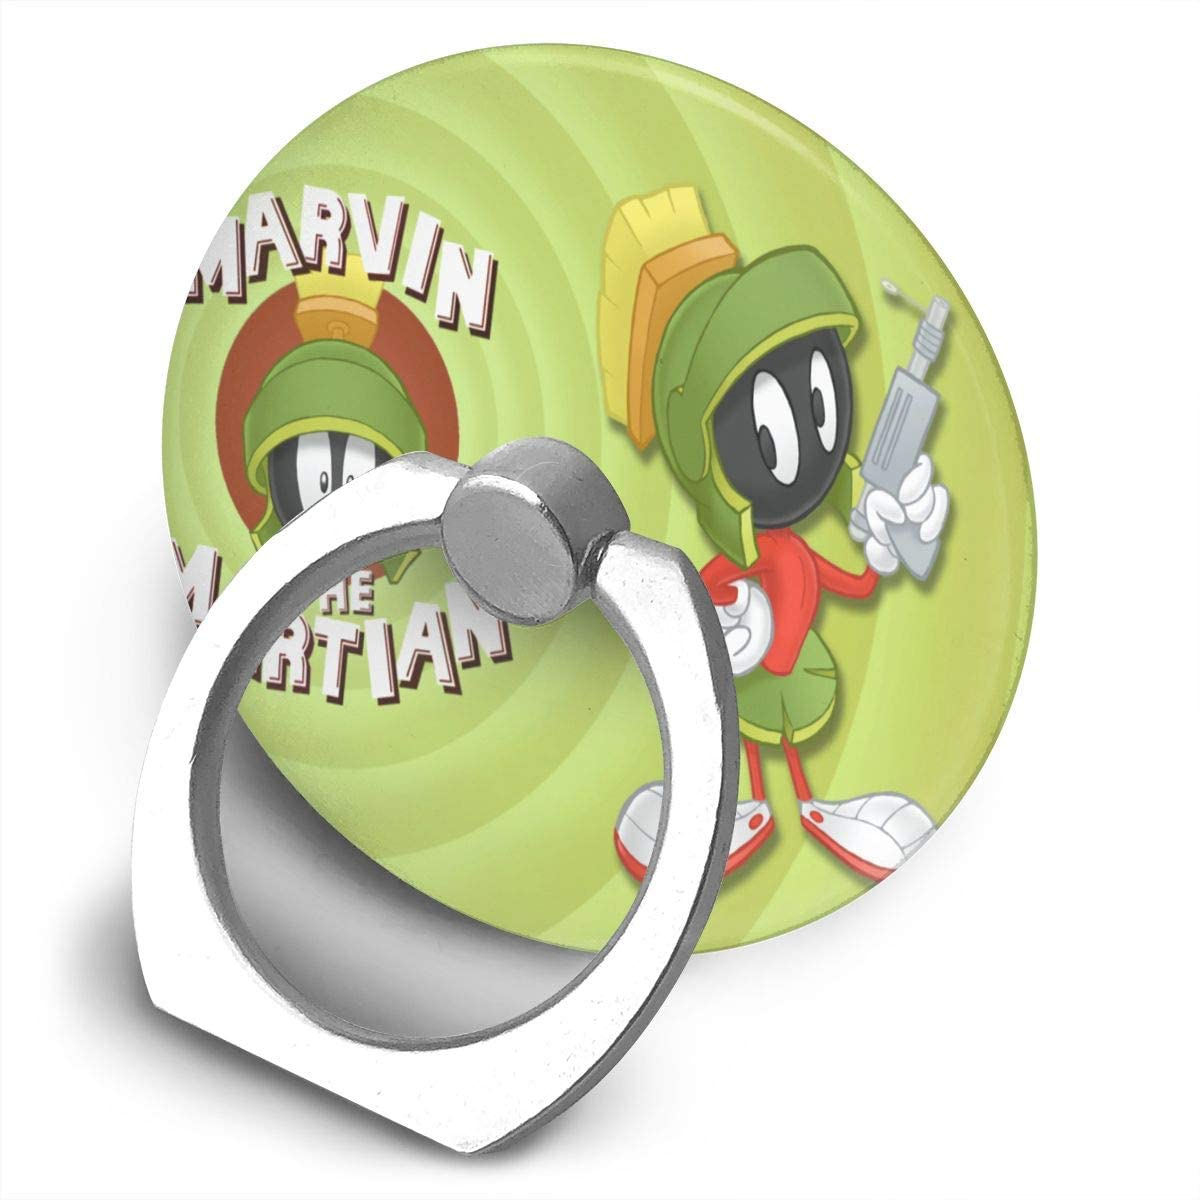 Martian Marvin Looney Tunes Phone Ring Cell Phone Ring Holder Finger Kickstand,360 Degree Rotation Stand Grip with Car Mount Compatible with All Smartphone-Life is an Adventure